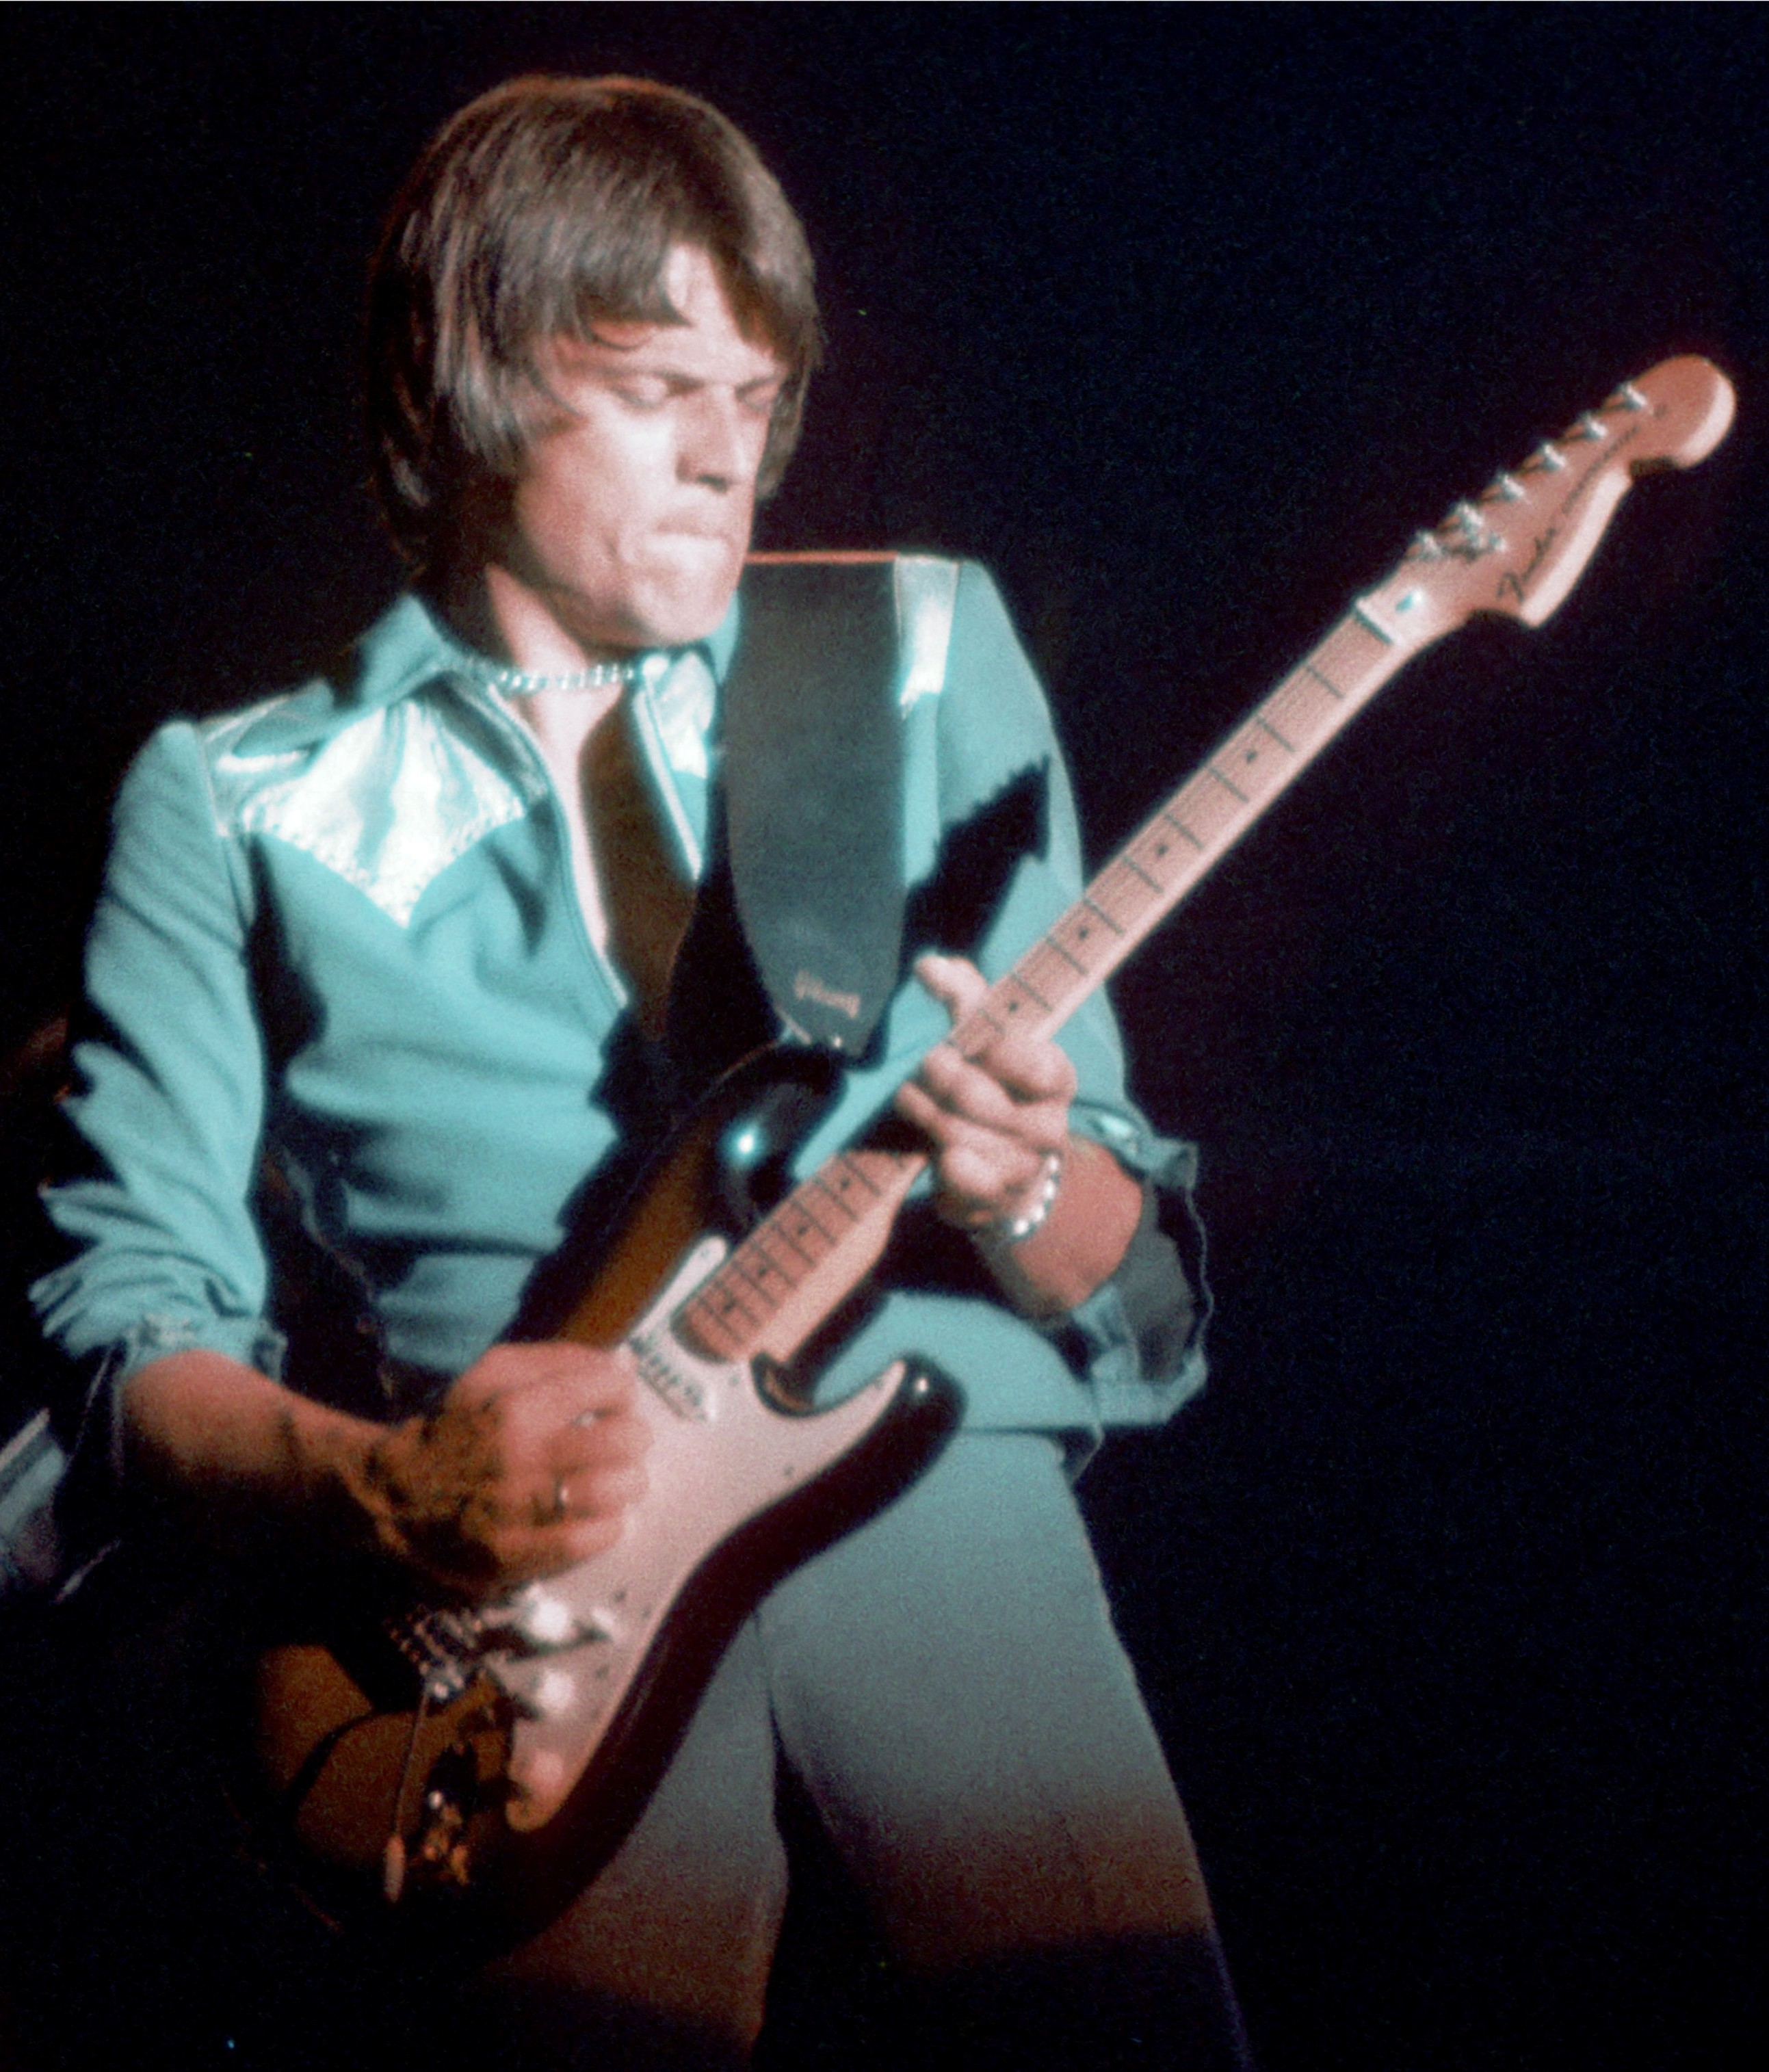 The 72-year old son of father (?) and mother(?) J. Geils in 2018 photo. J. Geils earned a  million dollar salary - leaving the net worth at 8 million in 2018